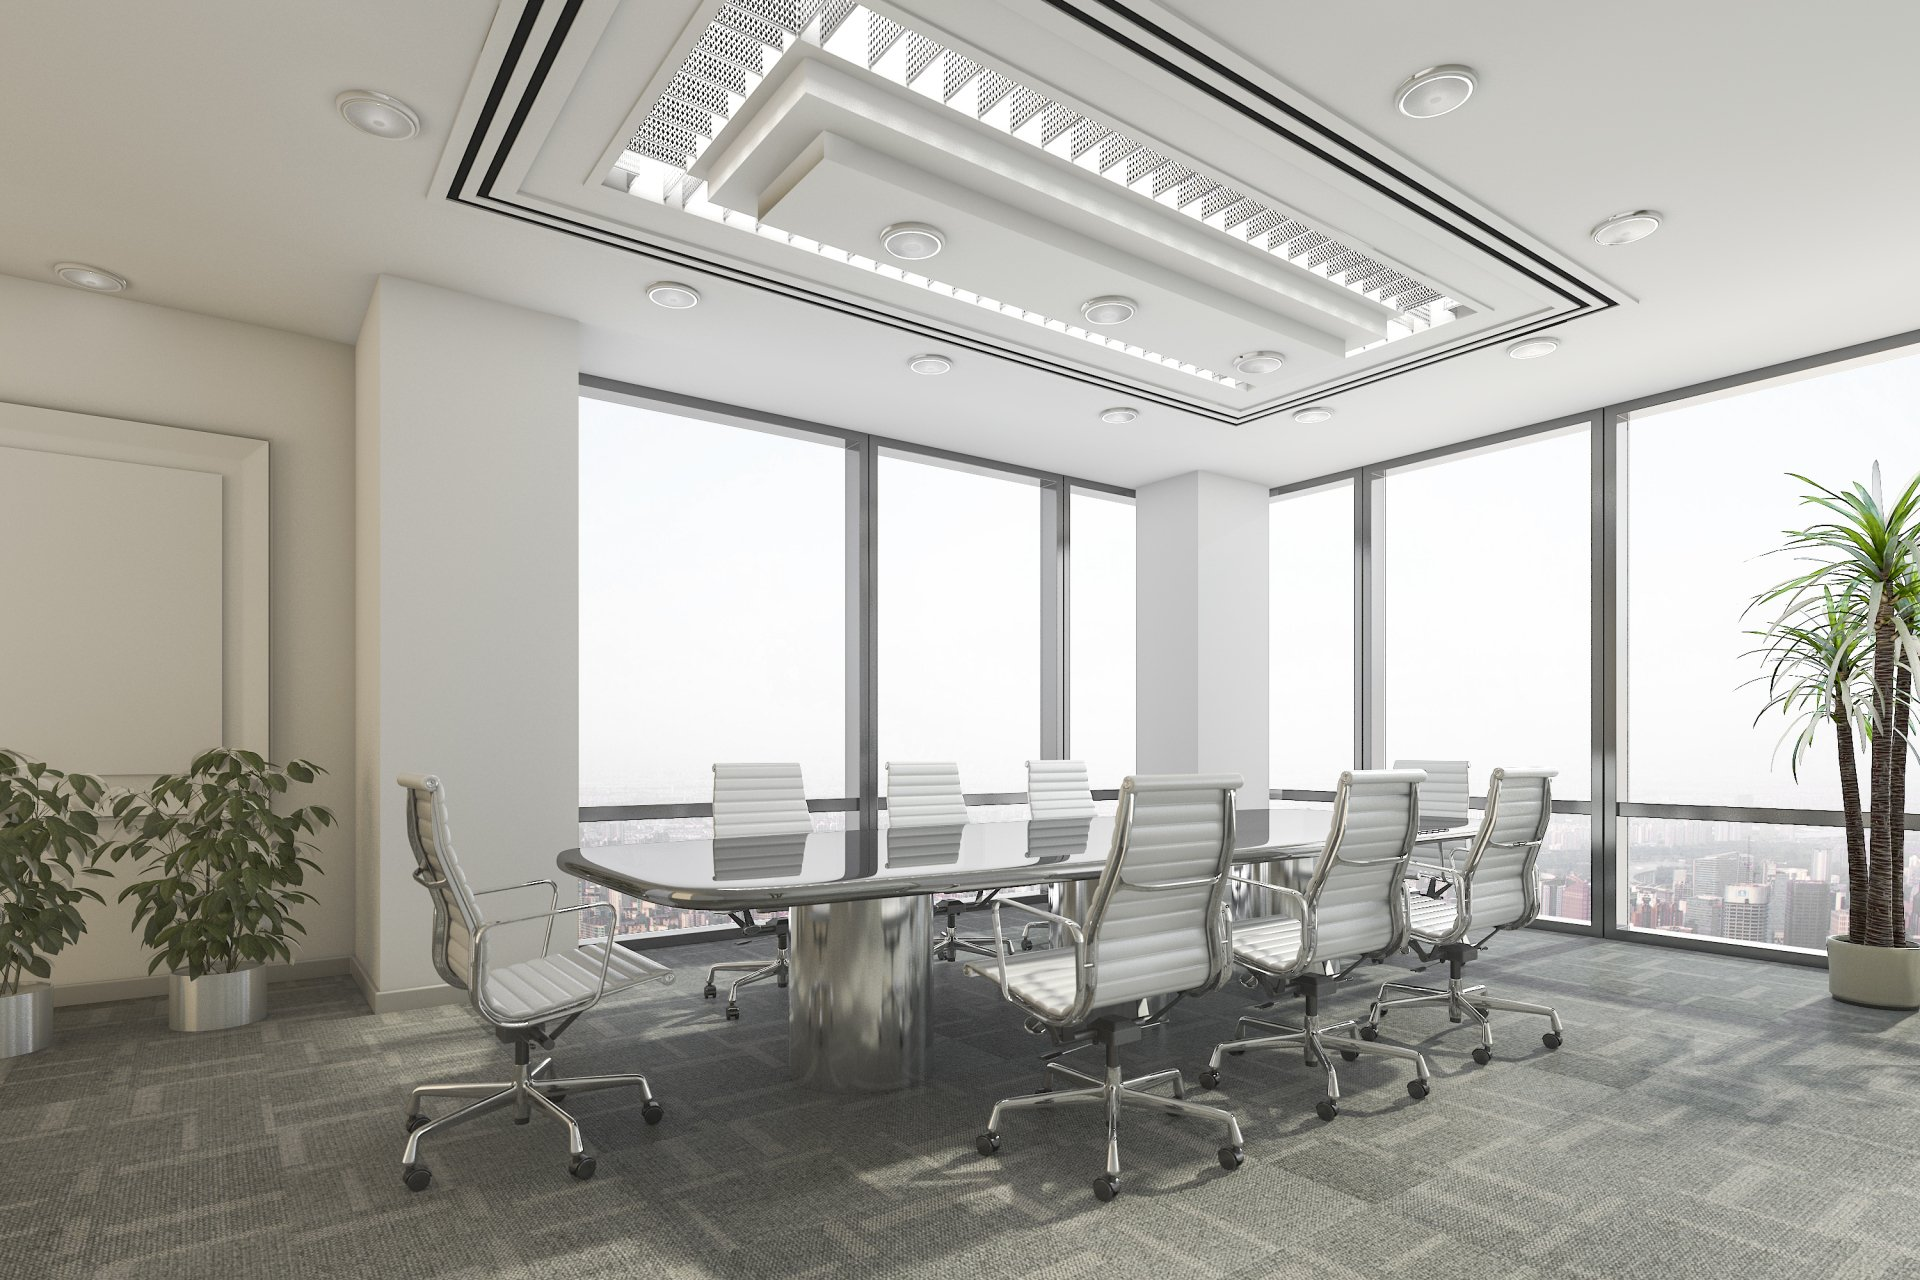 6 Economic Benefits of a Commercial Window Tint